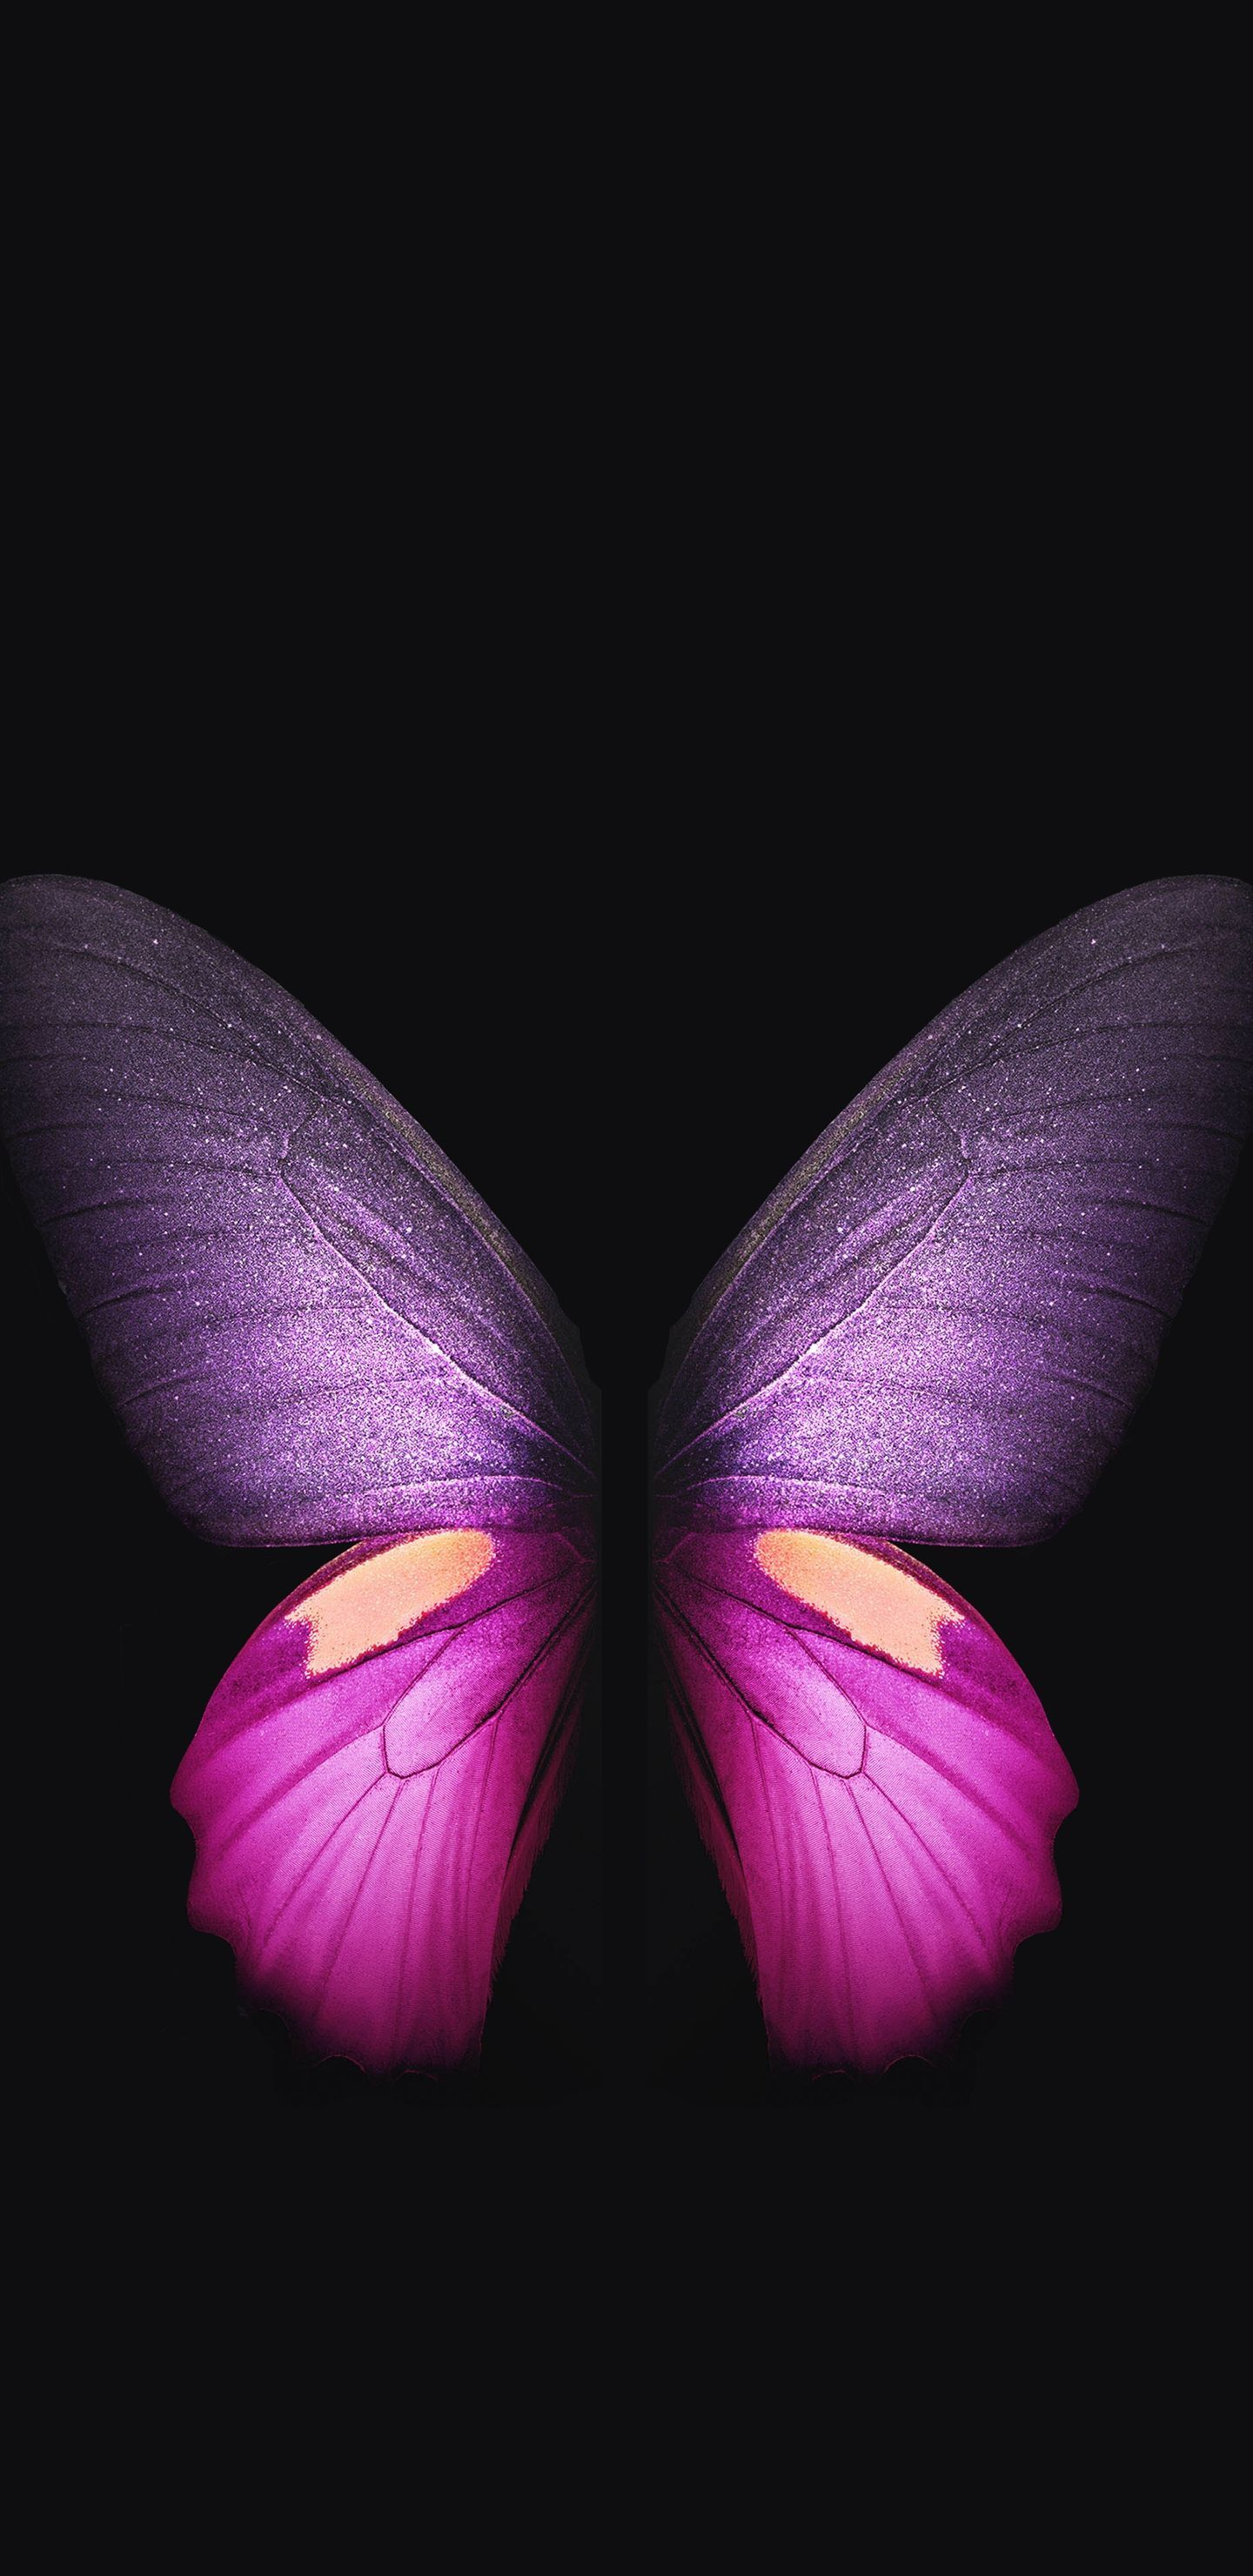 Samsung Galaxy Fold Wallpaper YTECHB Exclusive Pink Exclusive 1440x2960